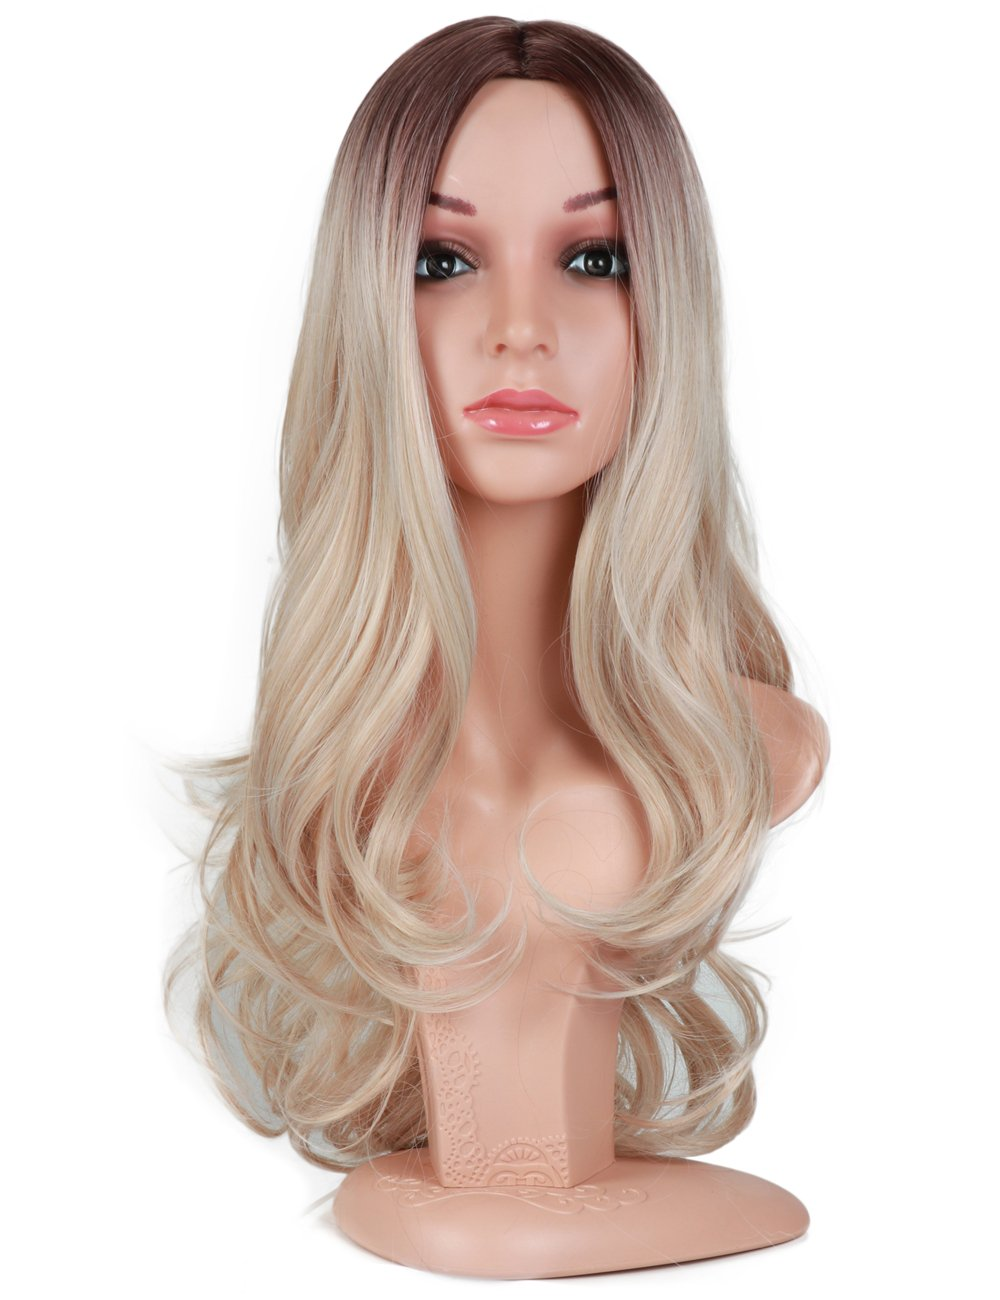 Fani Wigs Long Wavy Ash Blond Ombre Wigs for Women Dark Brown Roots Body Wave Middle Part Heat Resistant Synthetic Full Wig Cosplay Wigs with Free Wig Cap